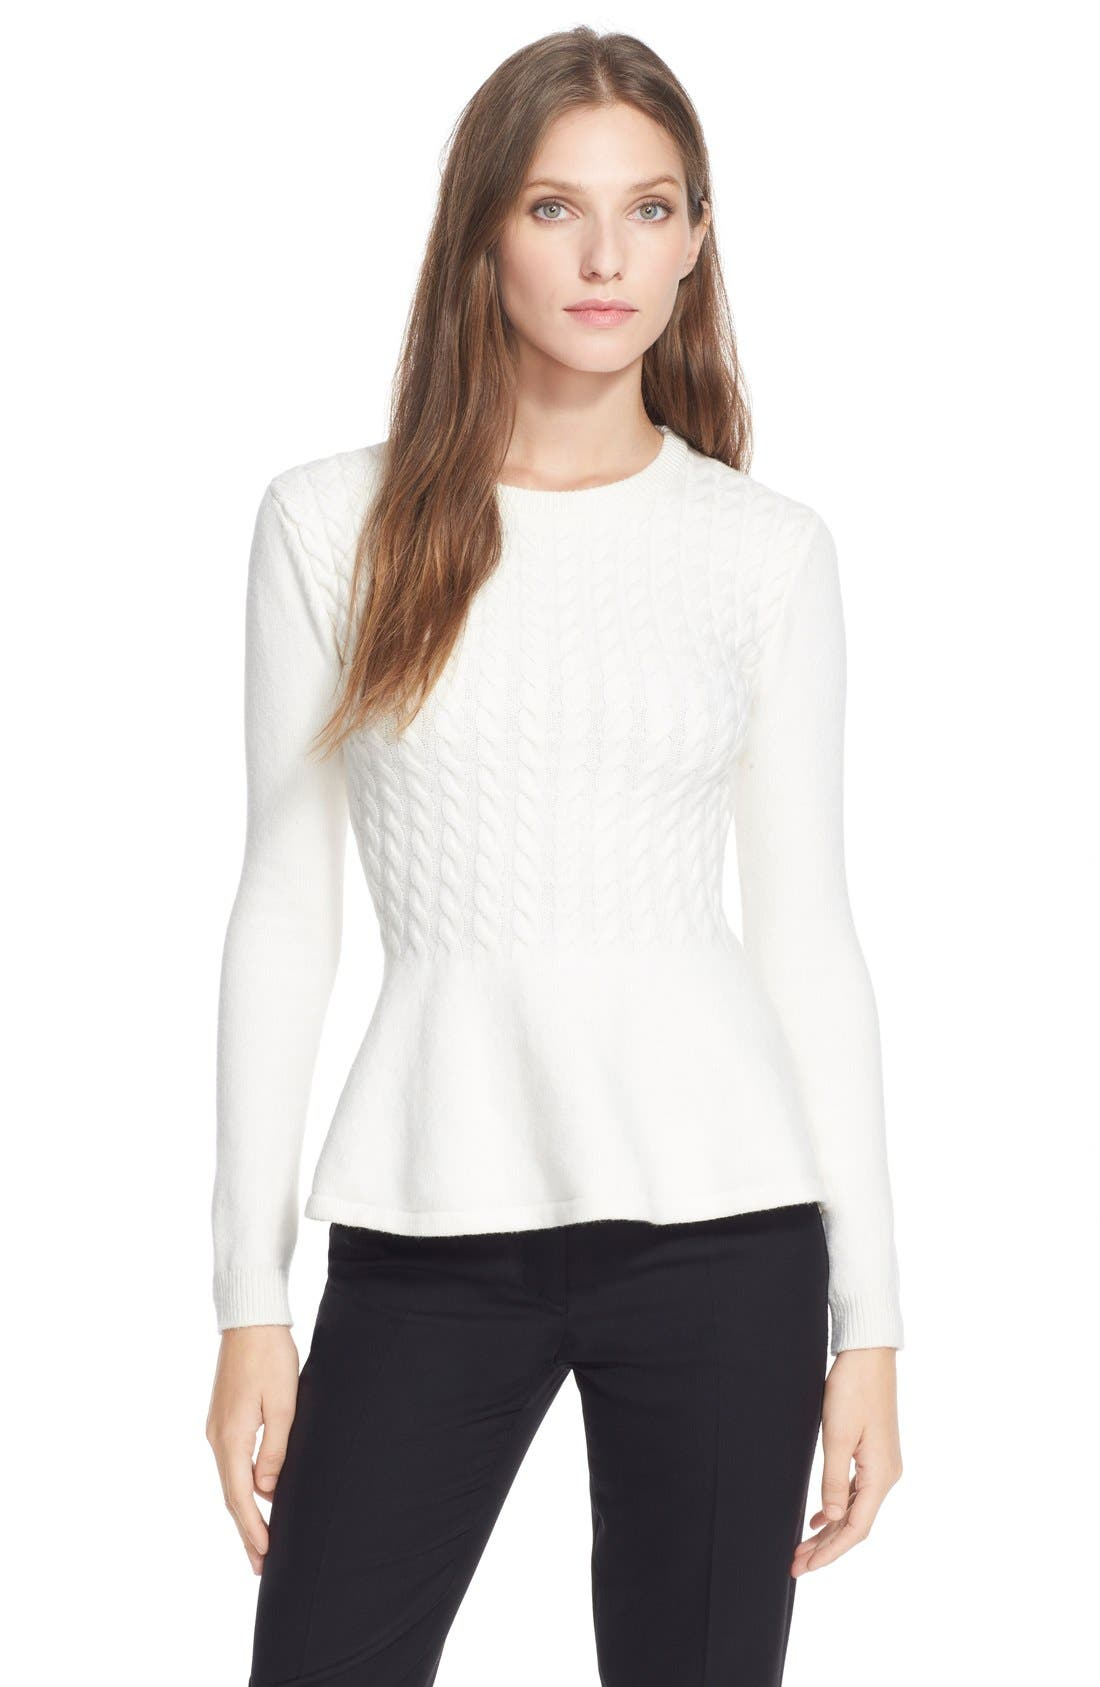 Main Image - Ted Baker London 'Mereda' Cable Knit PeplumSweater